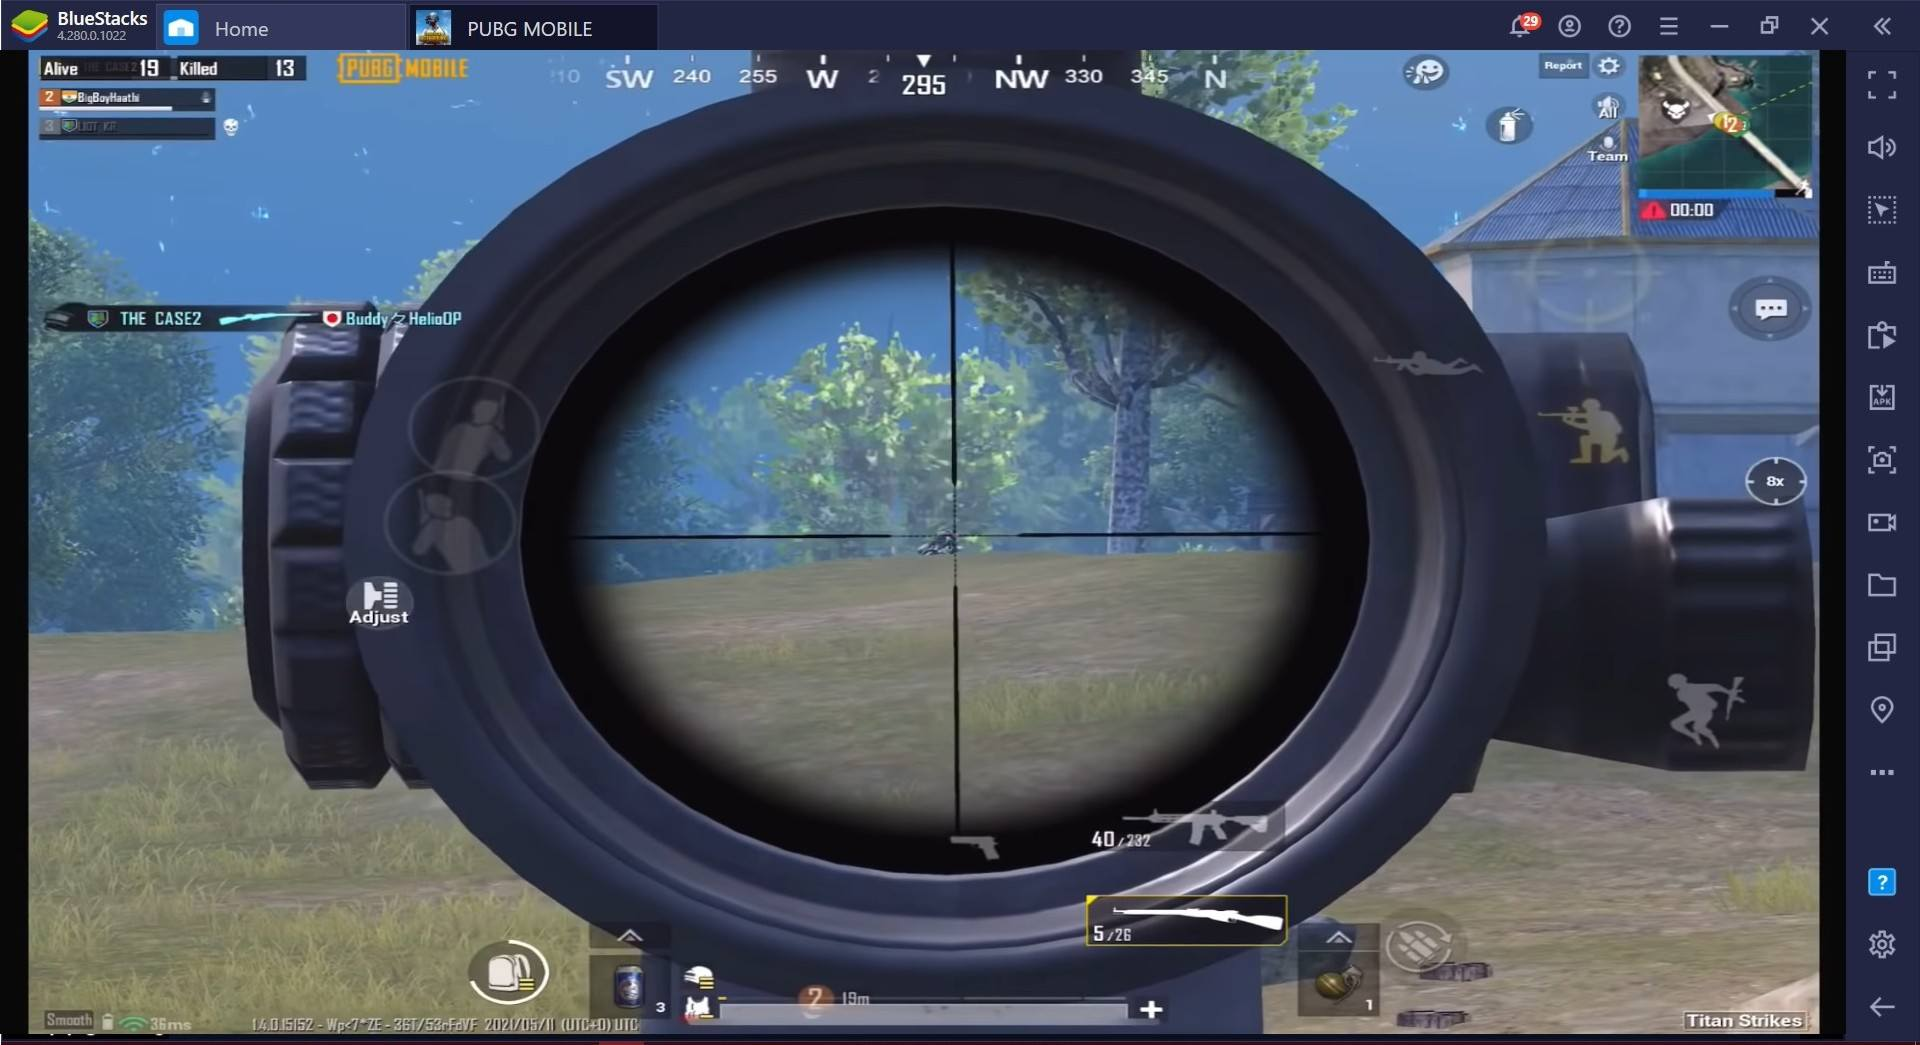 PUBG Mobile Grenading Guide: Learn How to Cook Them Properly